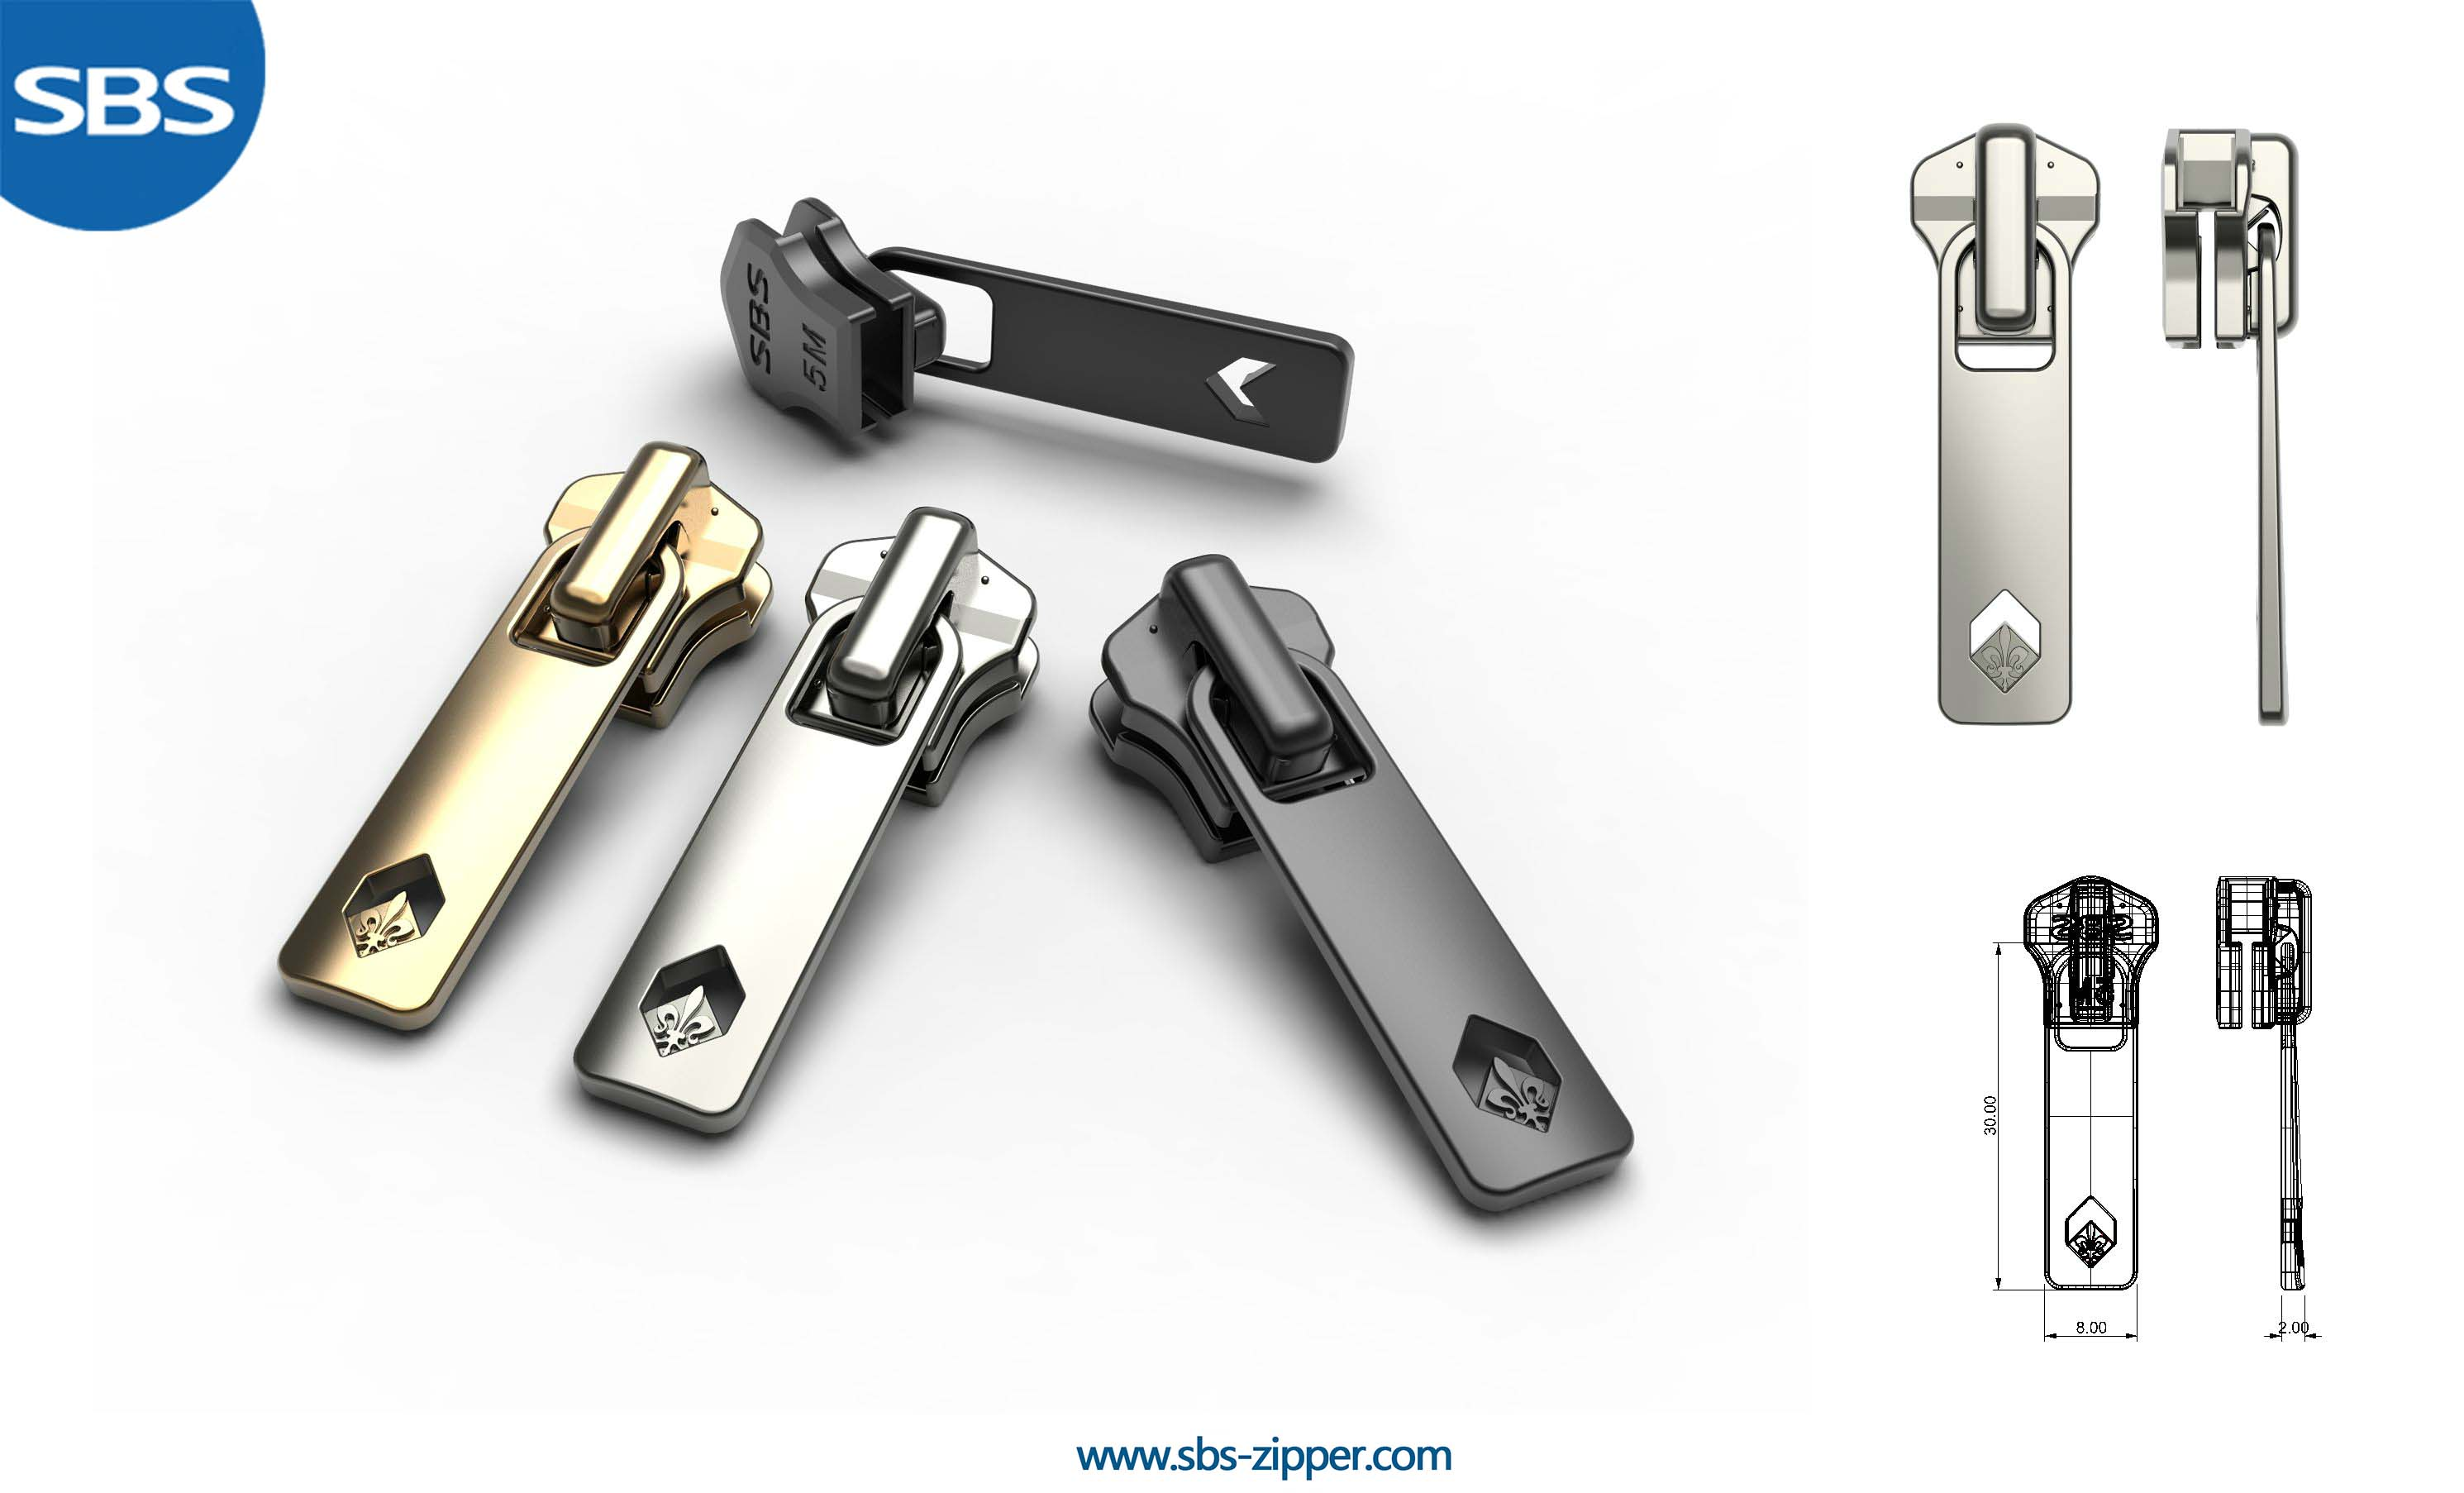 Zipper Puller Design Supplier 17SMC003 | SBS Zipper